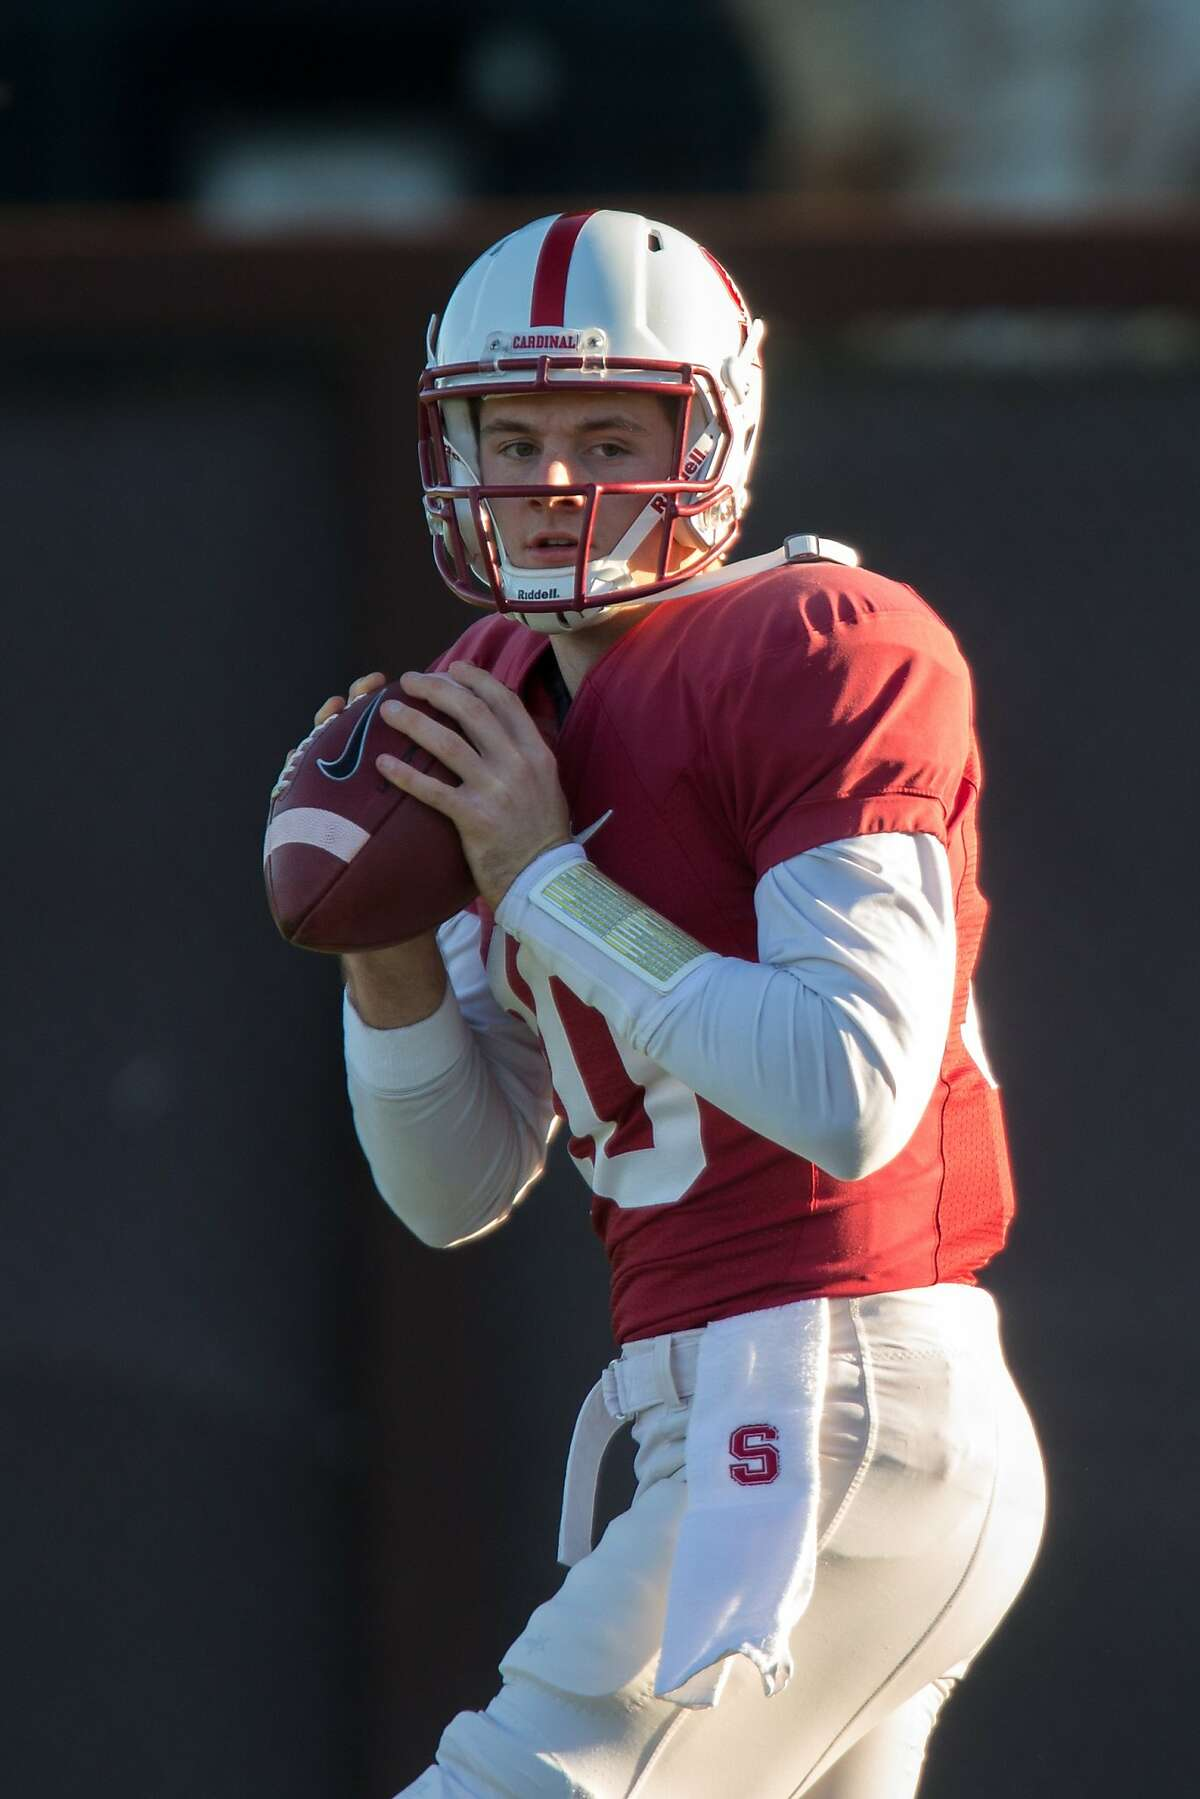 Stanford backup quarterback Keller Chryst, #10, is seen at practice on Tuesday, Dec. 15, 2015 in Stanford.